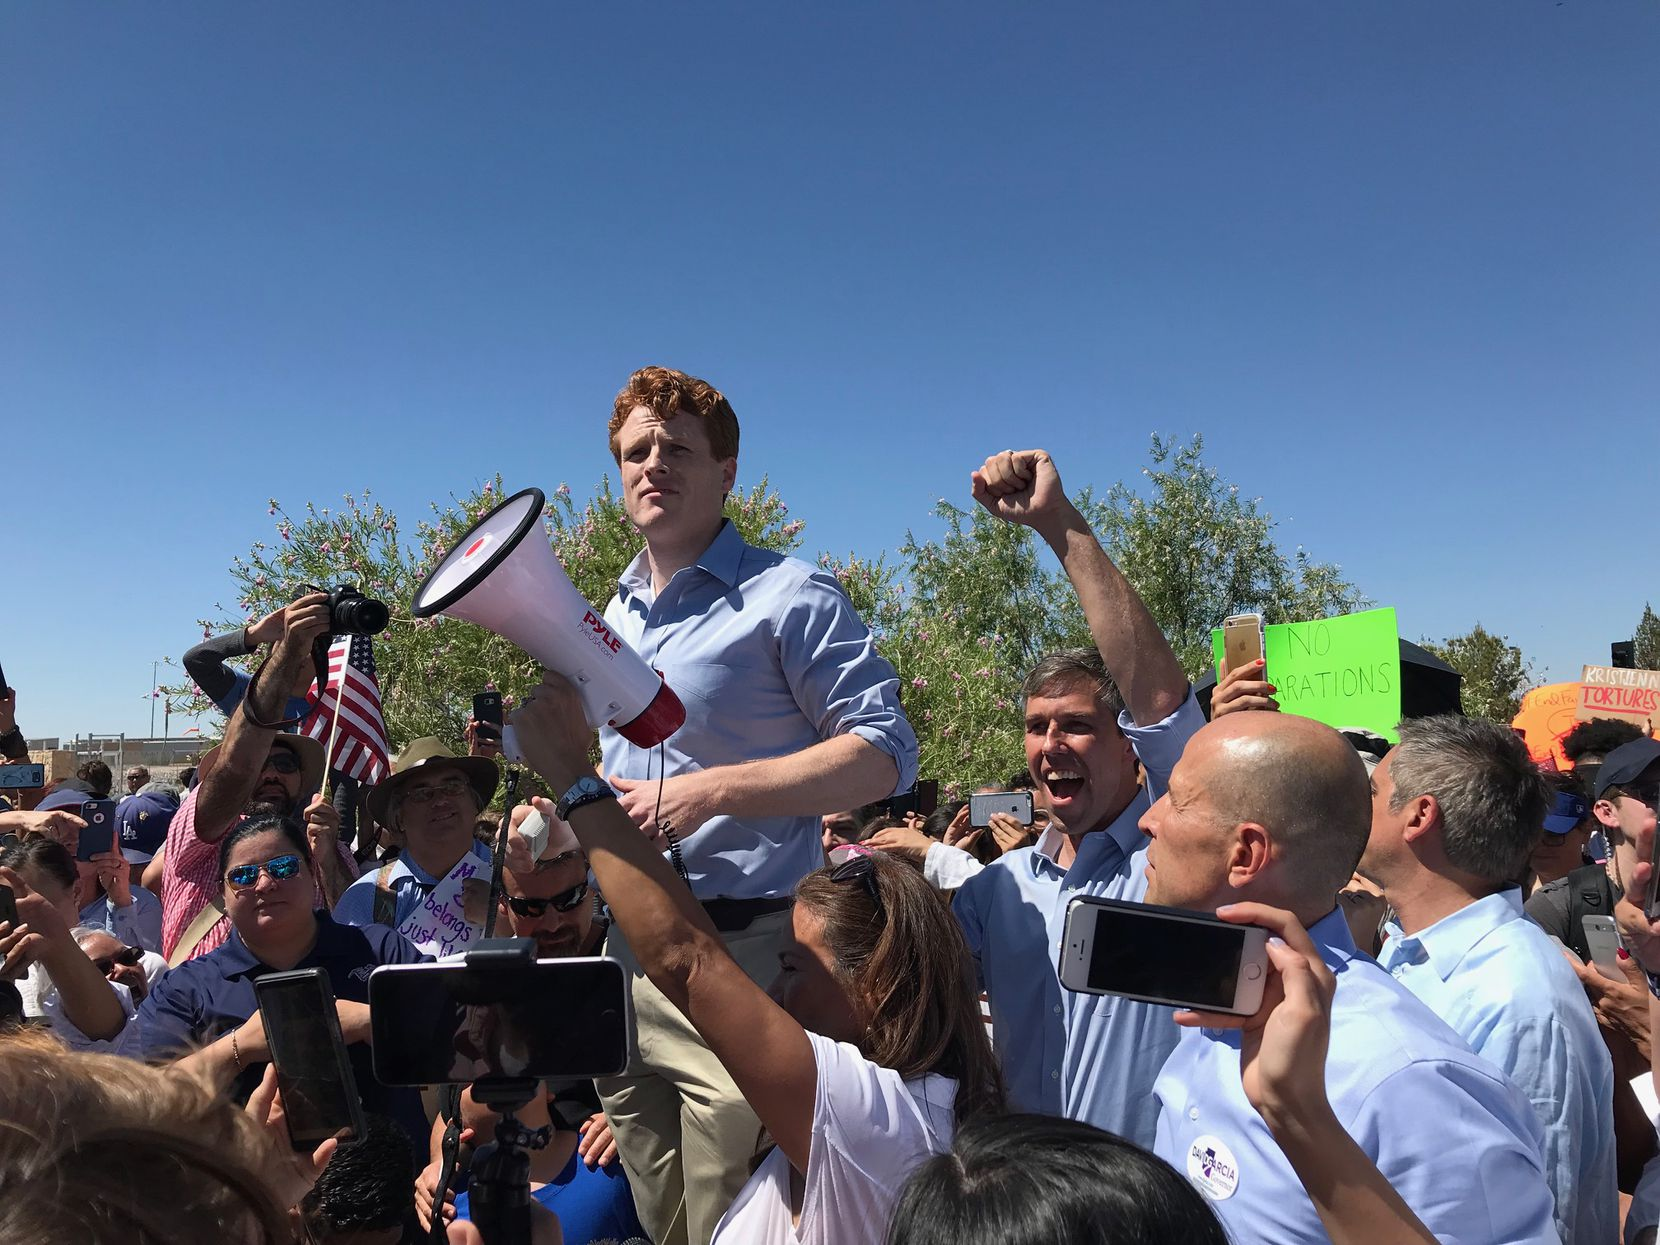 U.S. Rep. Joe Kennedy, D-Mass., joined protesters near Tornillo, Texas to protest Trump's immigration policies. Next to him is U.S. Rep. Beto O'Rourke, raising his arm. (Alfredo Corchado/Dallas Morning News)